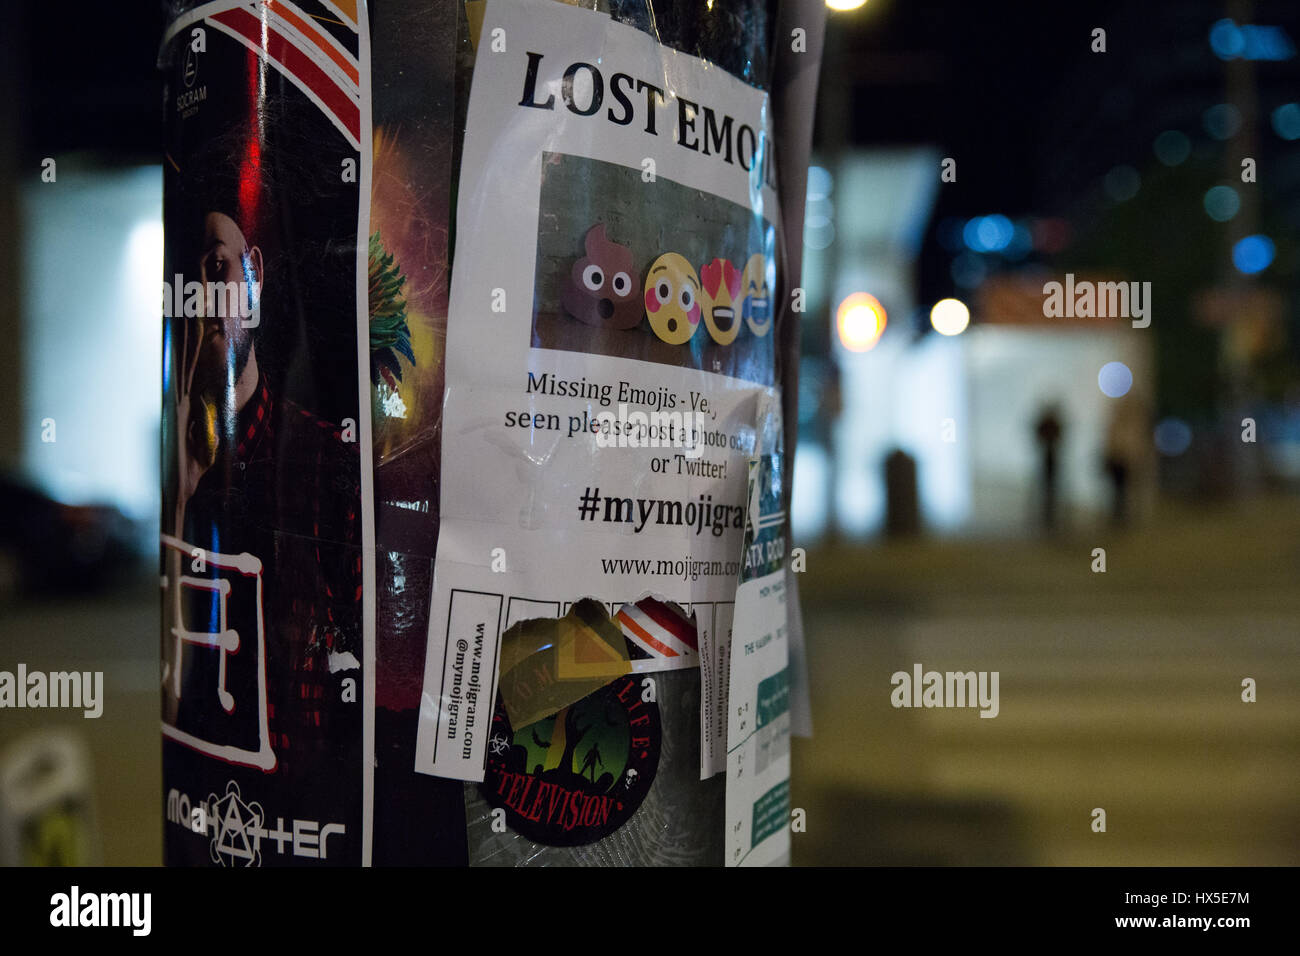 Lost Emoji sign flyposted on lamp post in downtown Austin, Texas. - Stock Image